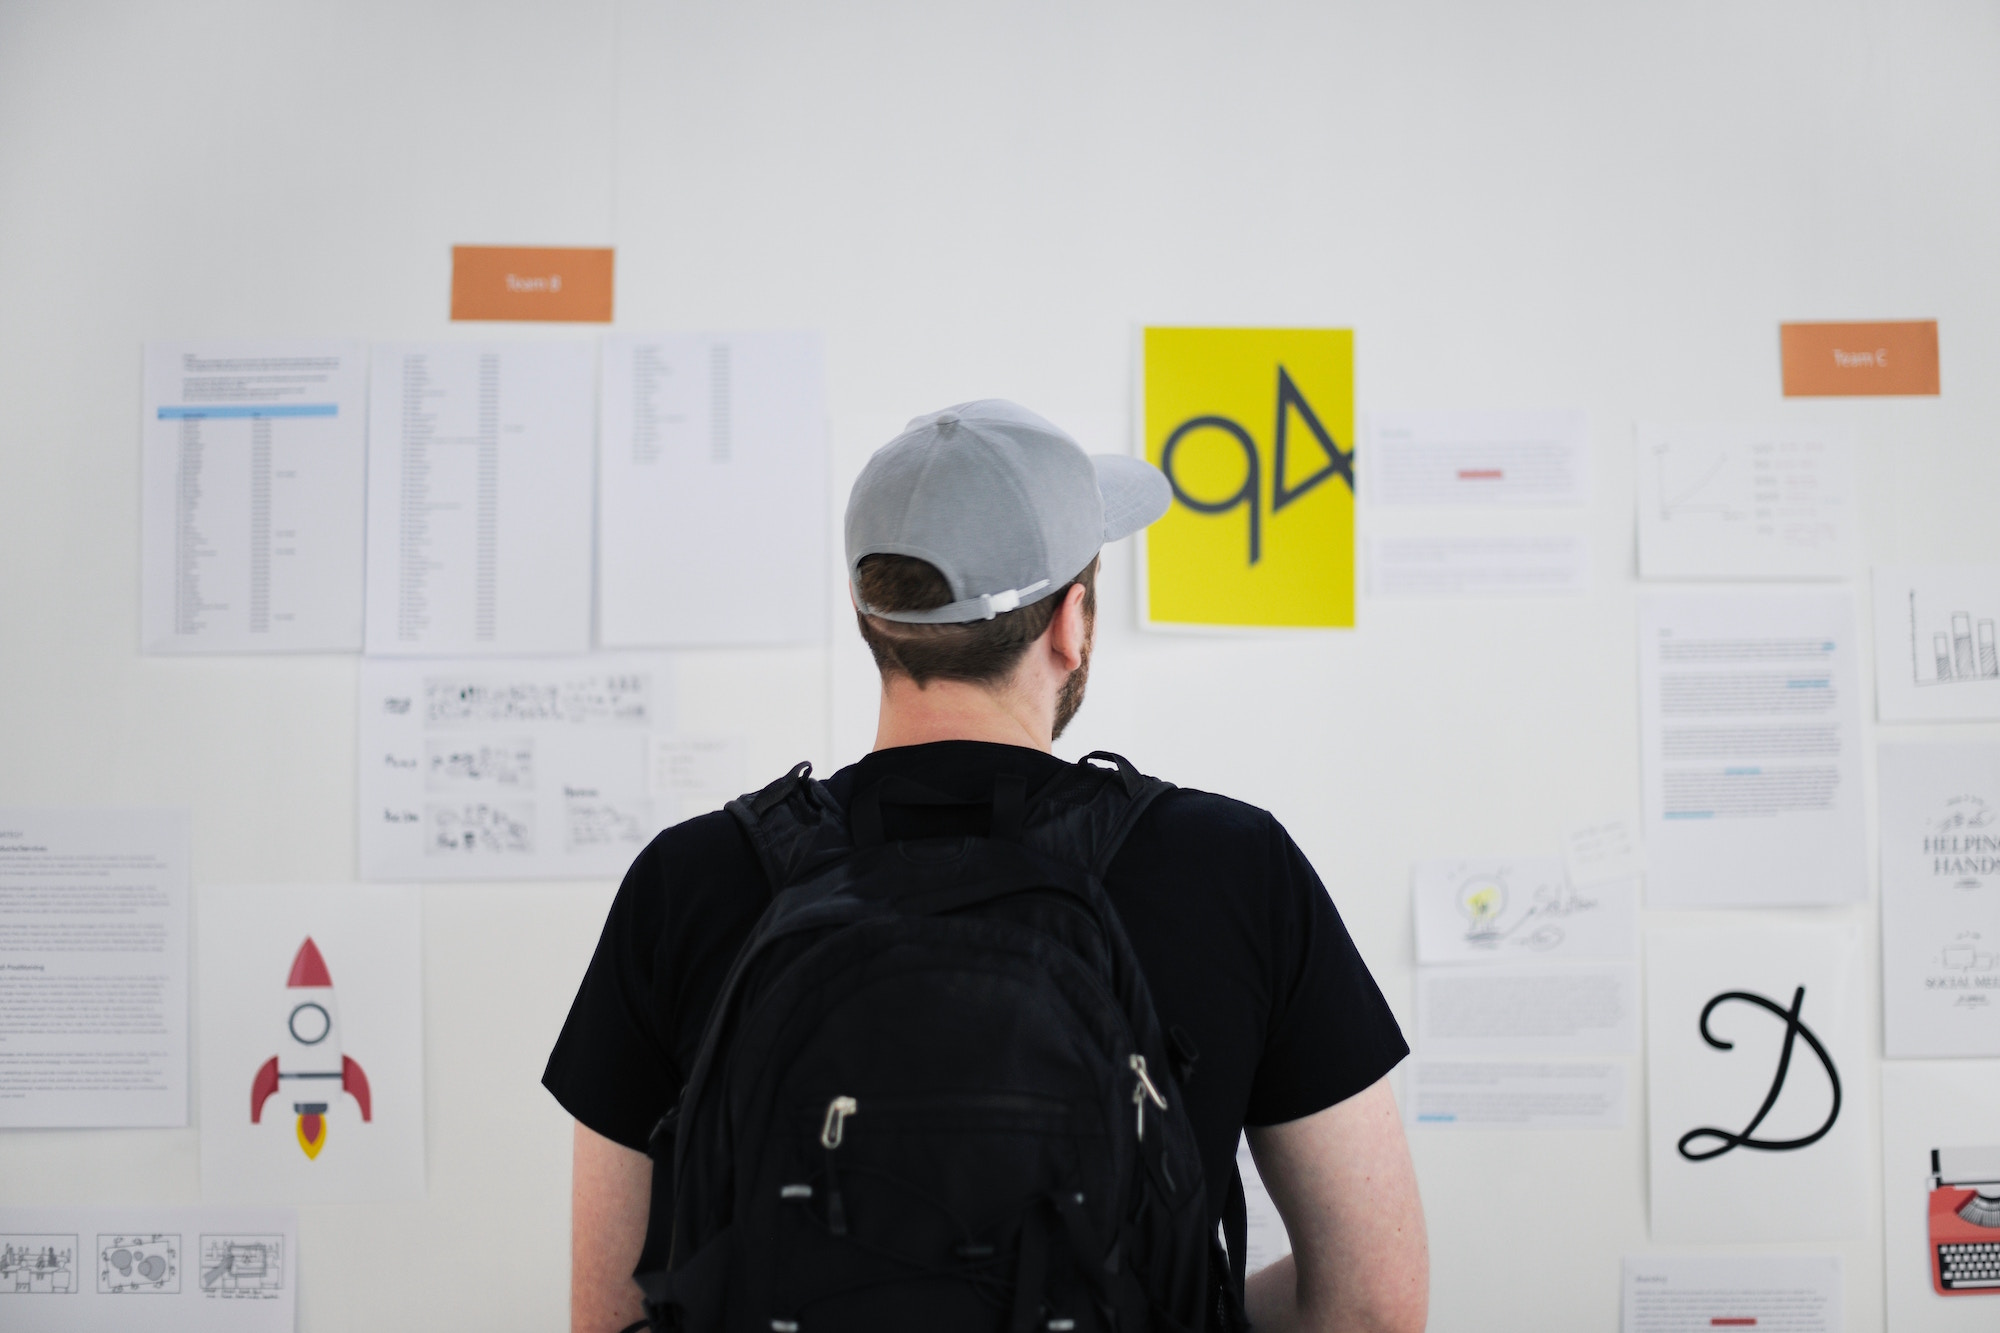 10 Skills Startups Value in Employees